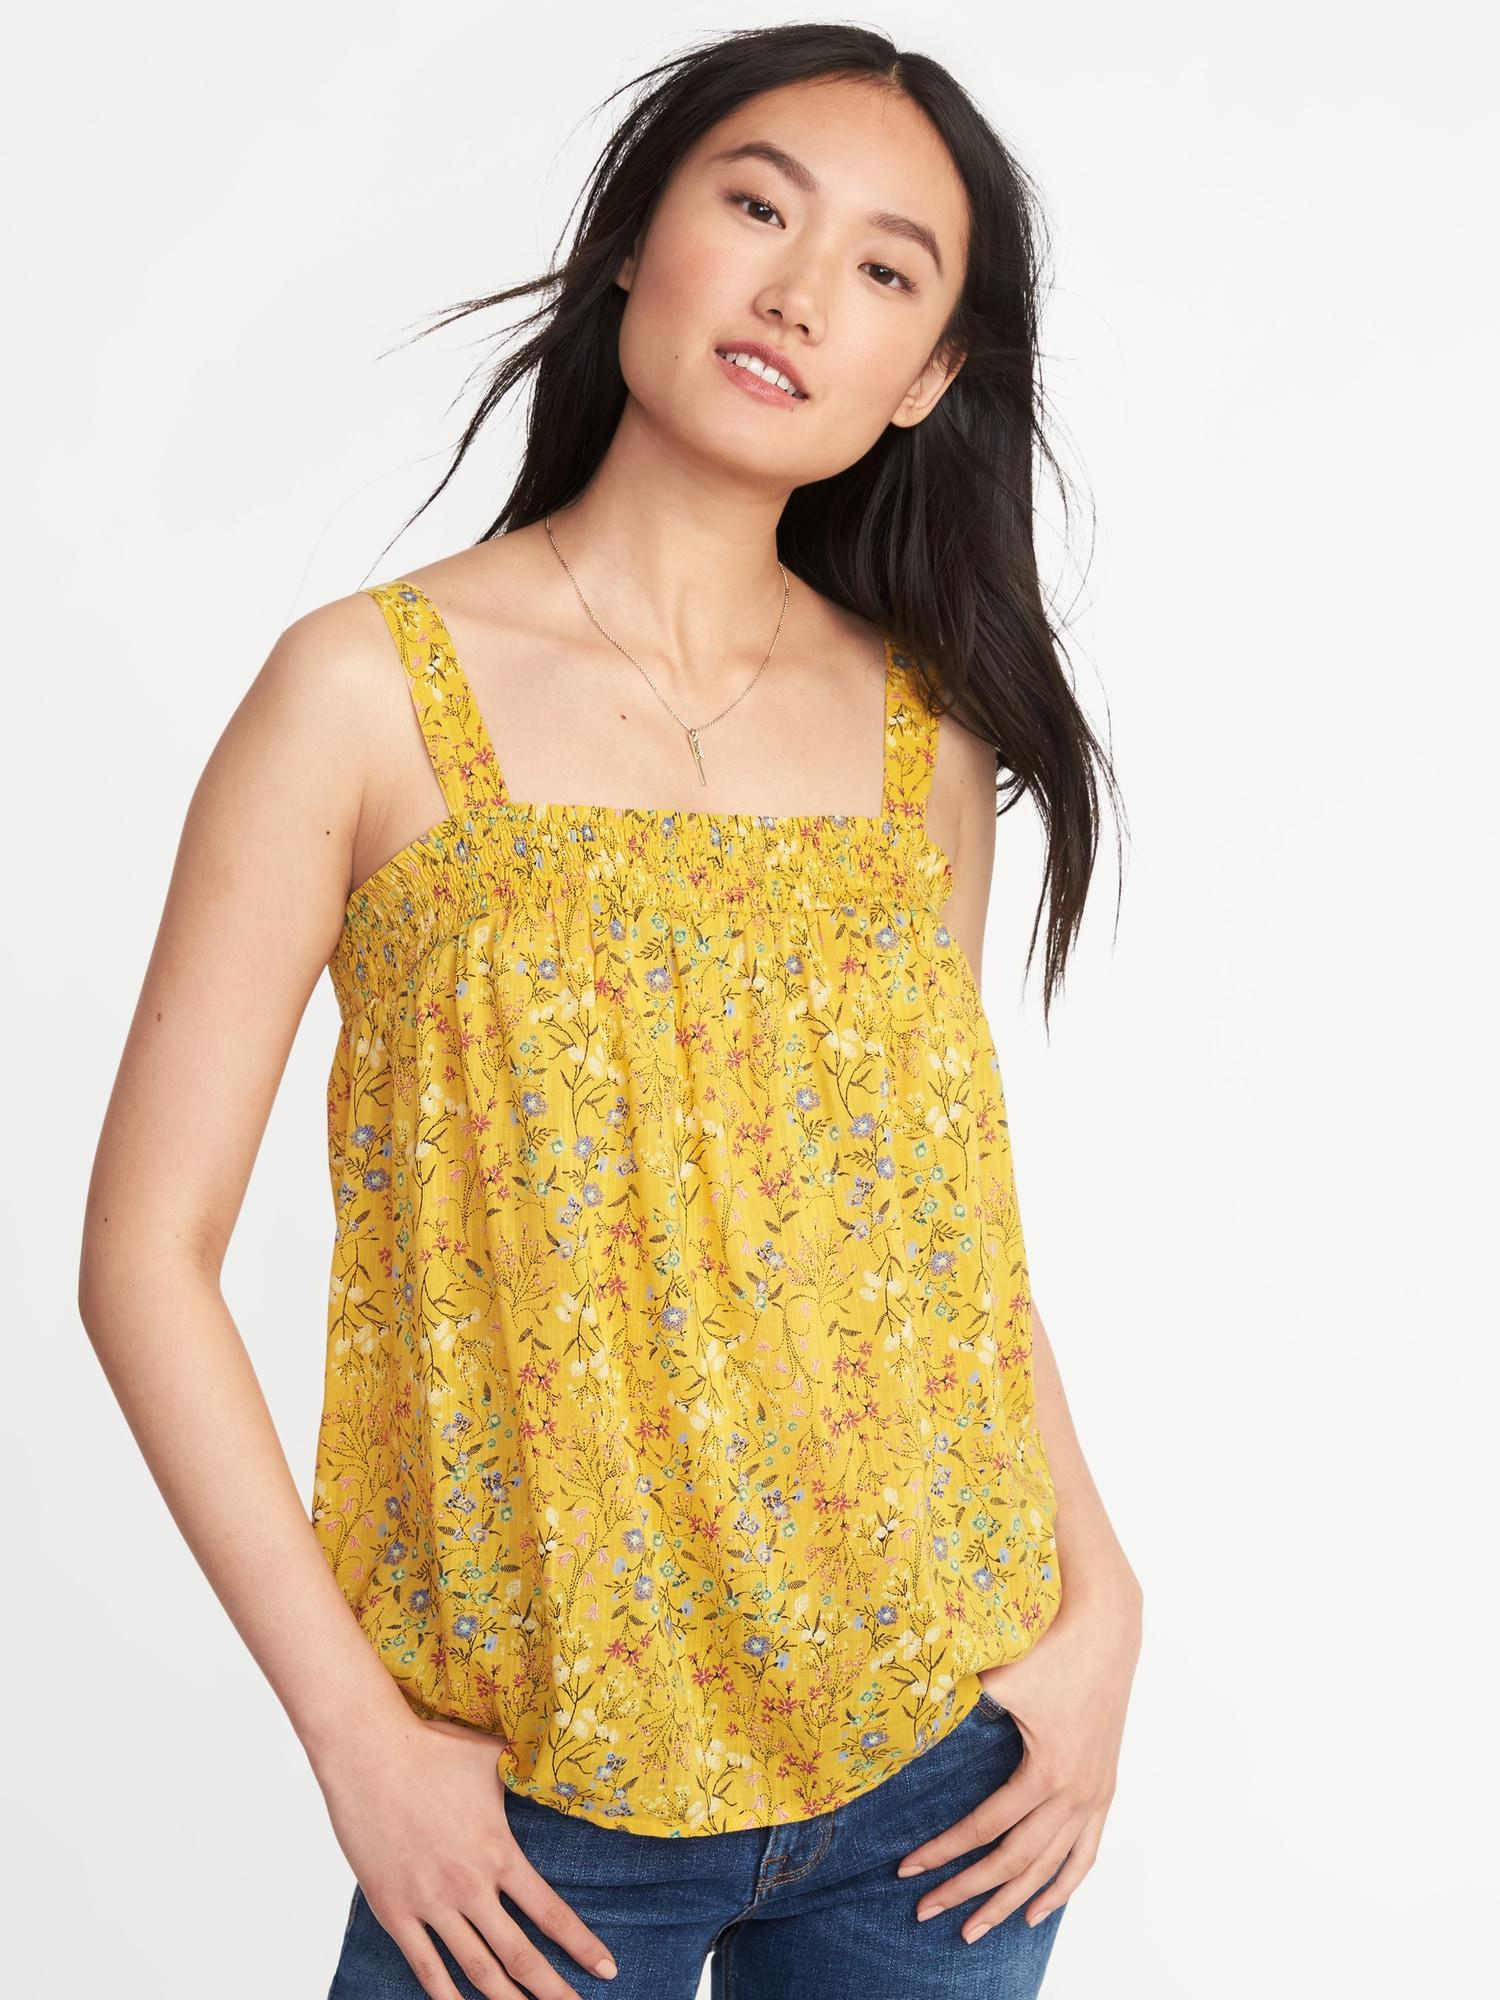 791de8e1314 Lyst - Old Navy Smocked Floral Swing Top in Yellow